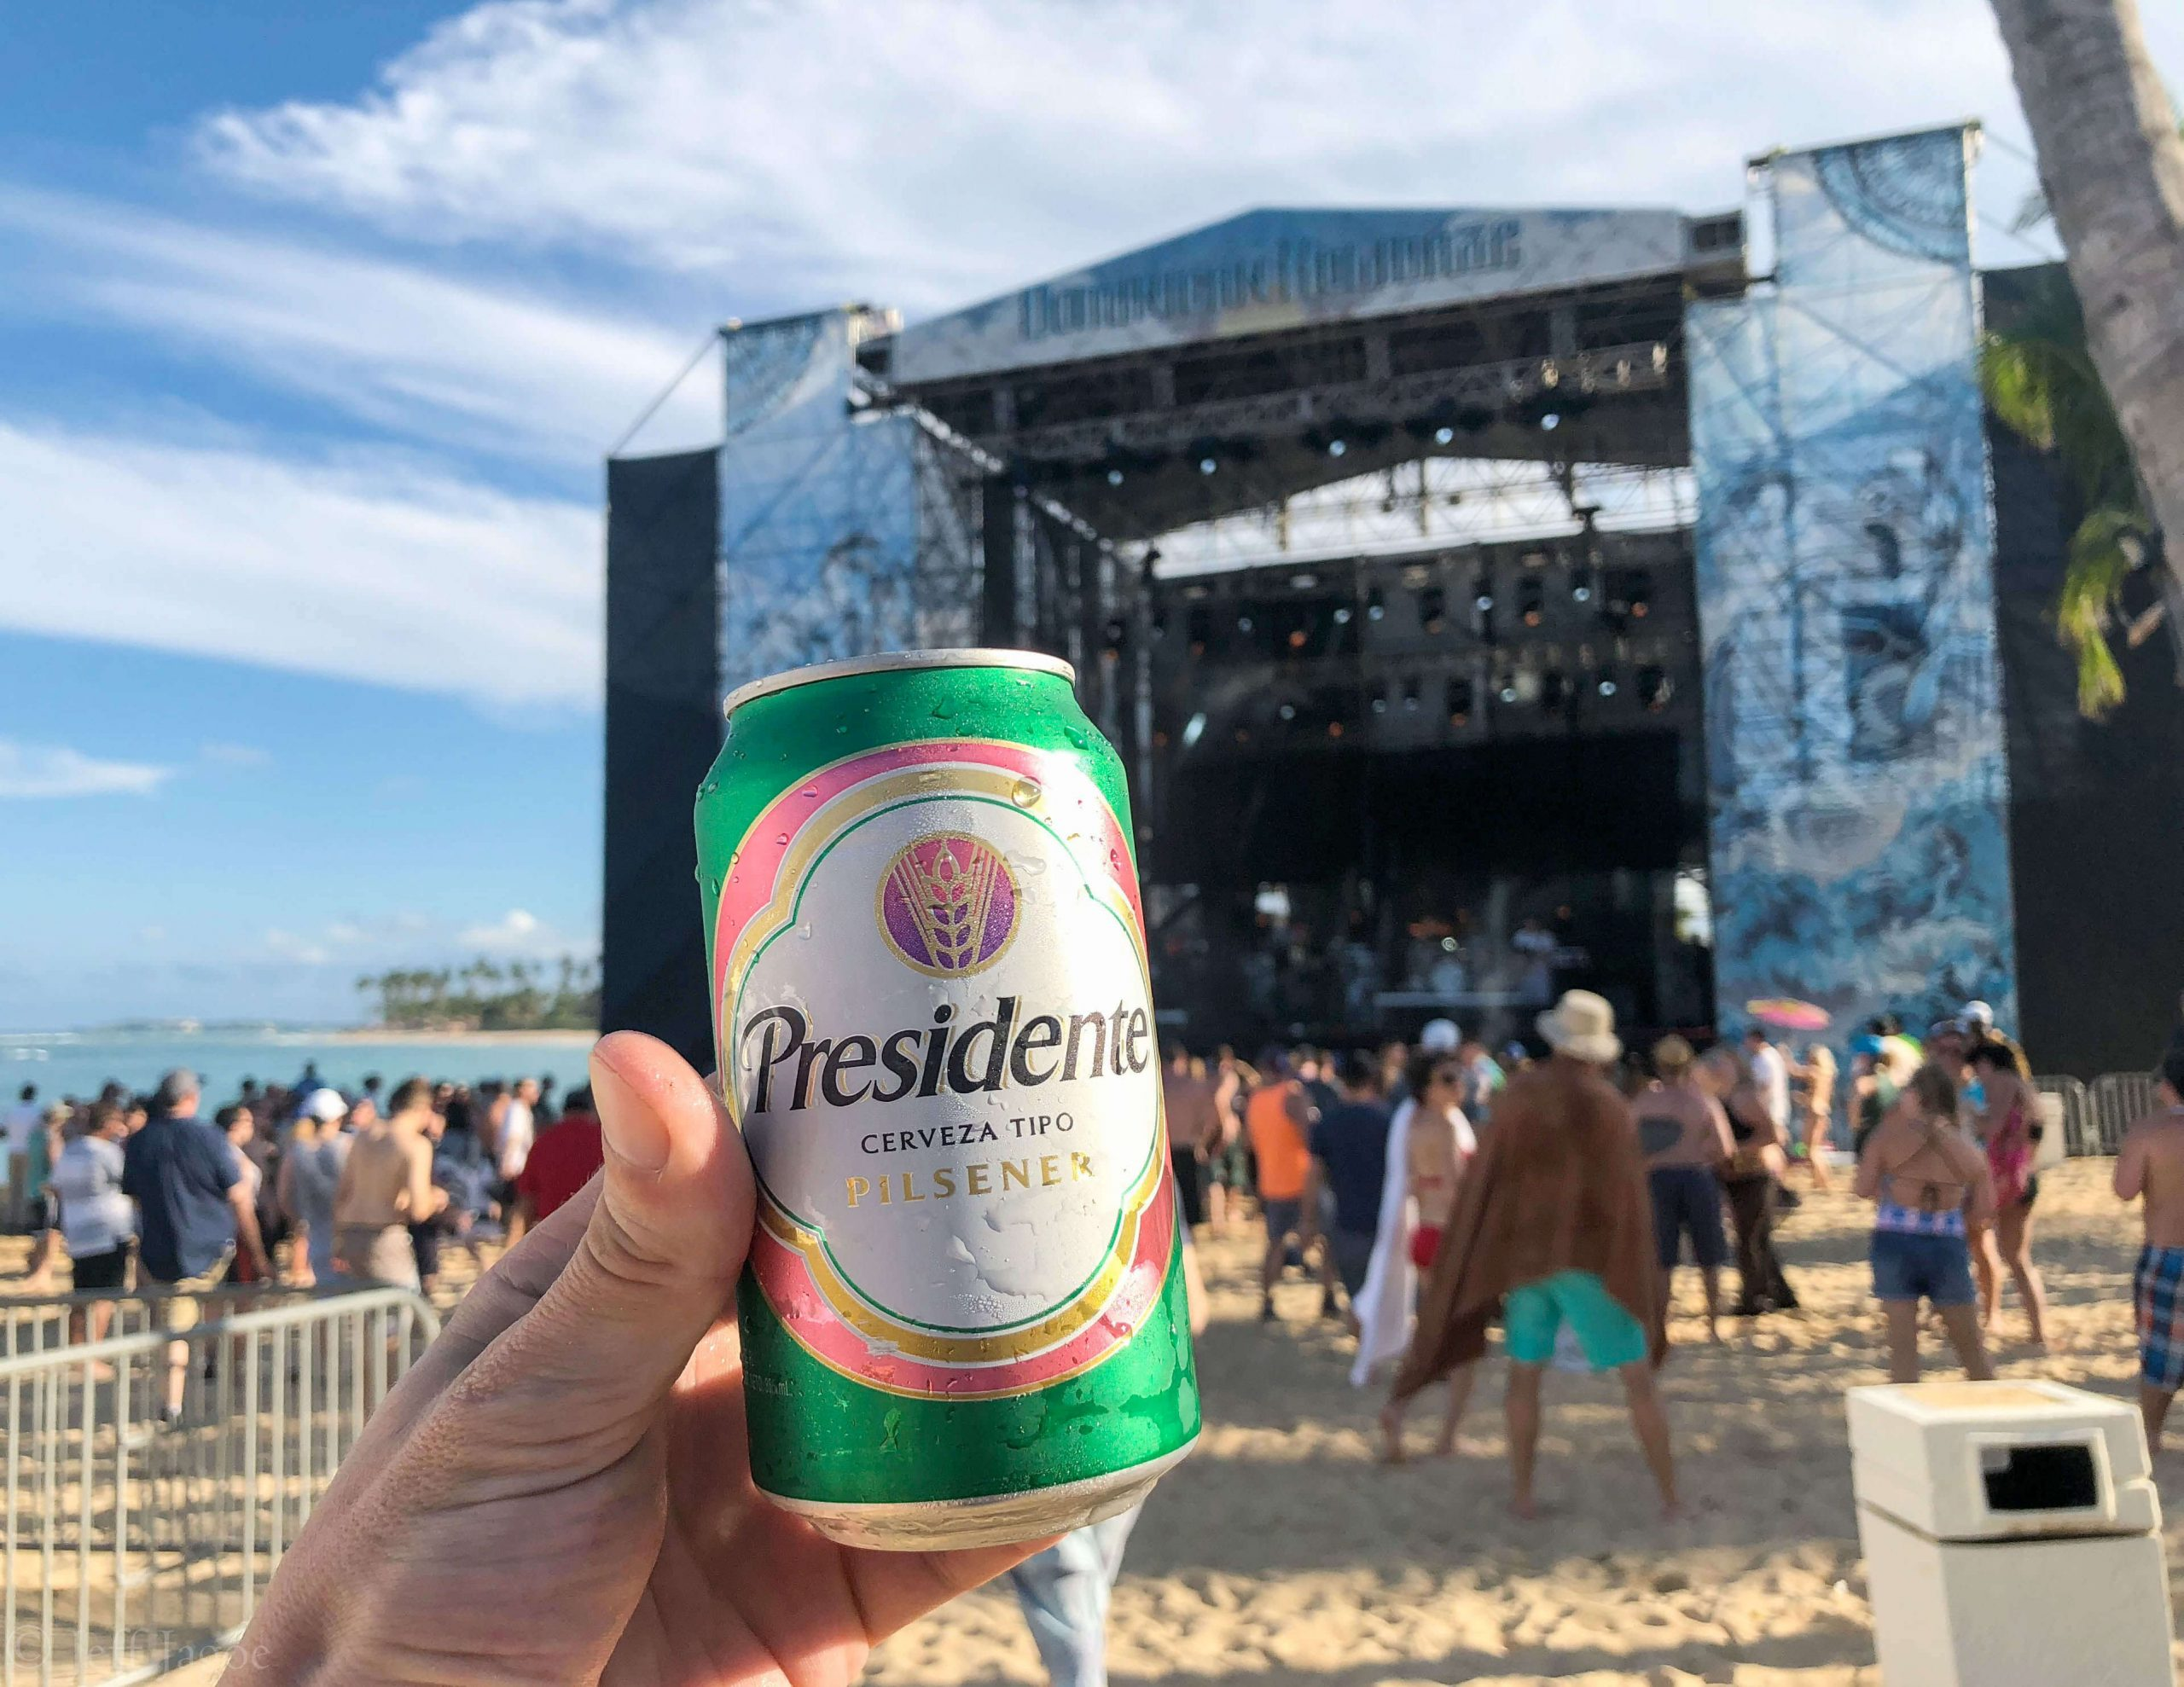 A person holds a can of 12 oz. can of Presidente beer by Cervecería Nacional Dominicana at a concert on a beach